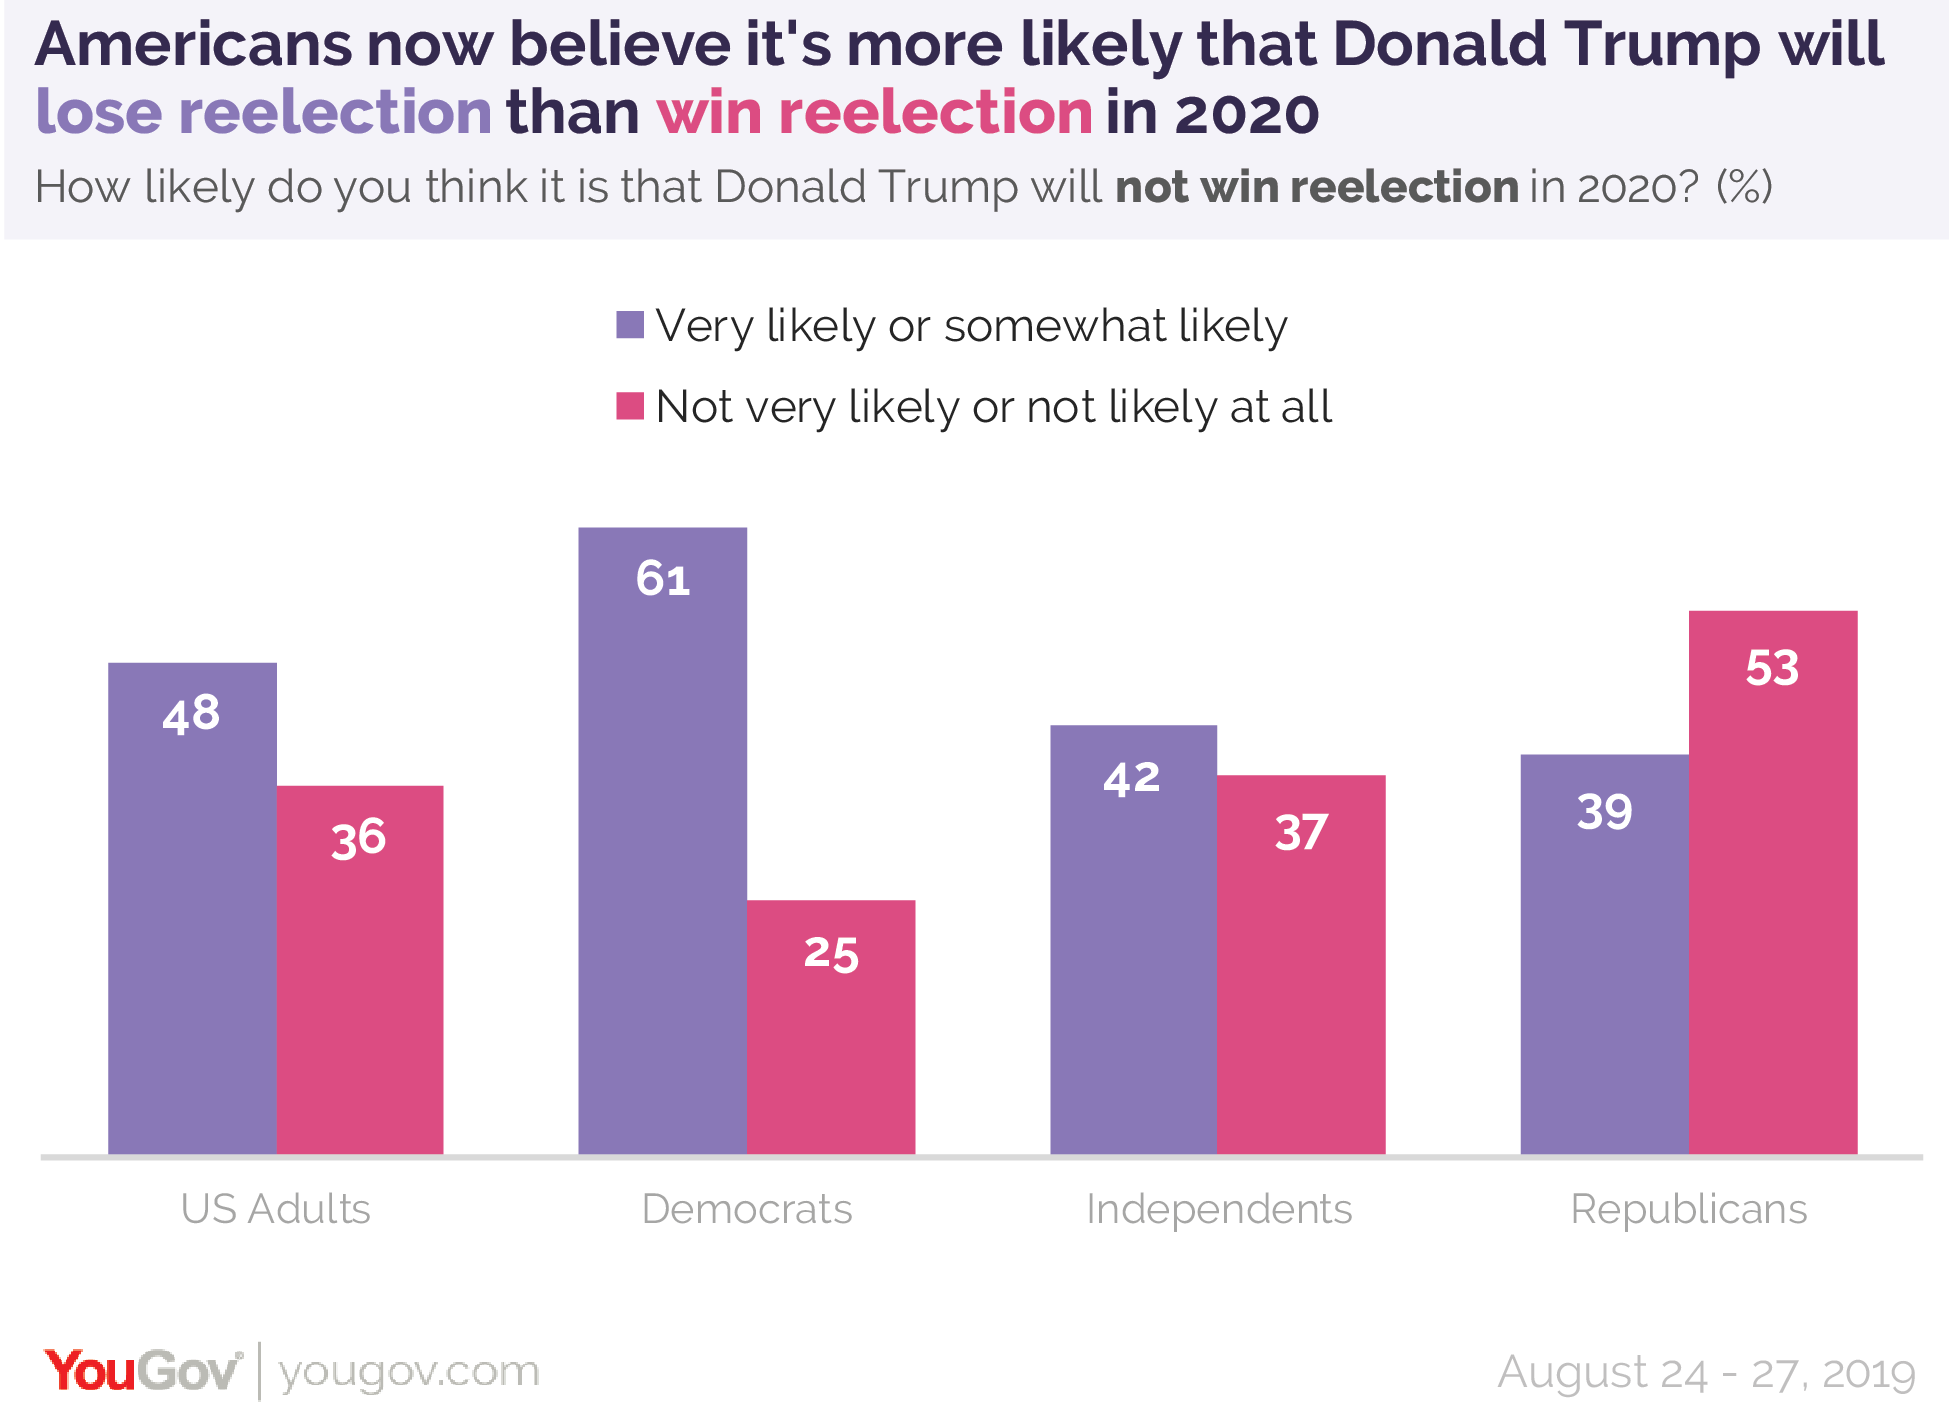 Americans now believe it's more likely that Donald Trump will lose reelection than win reelection in 2020